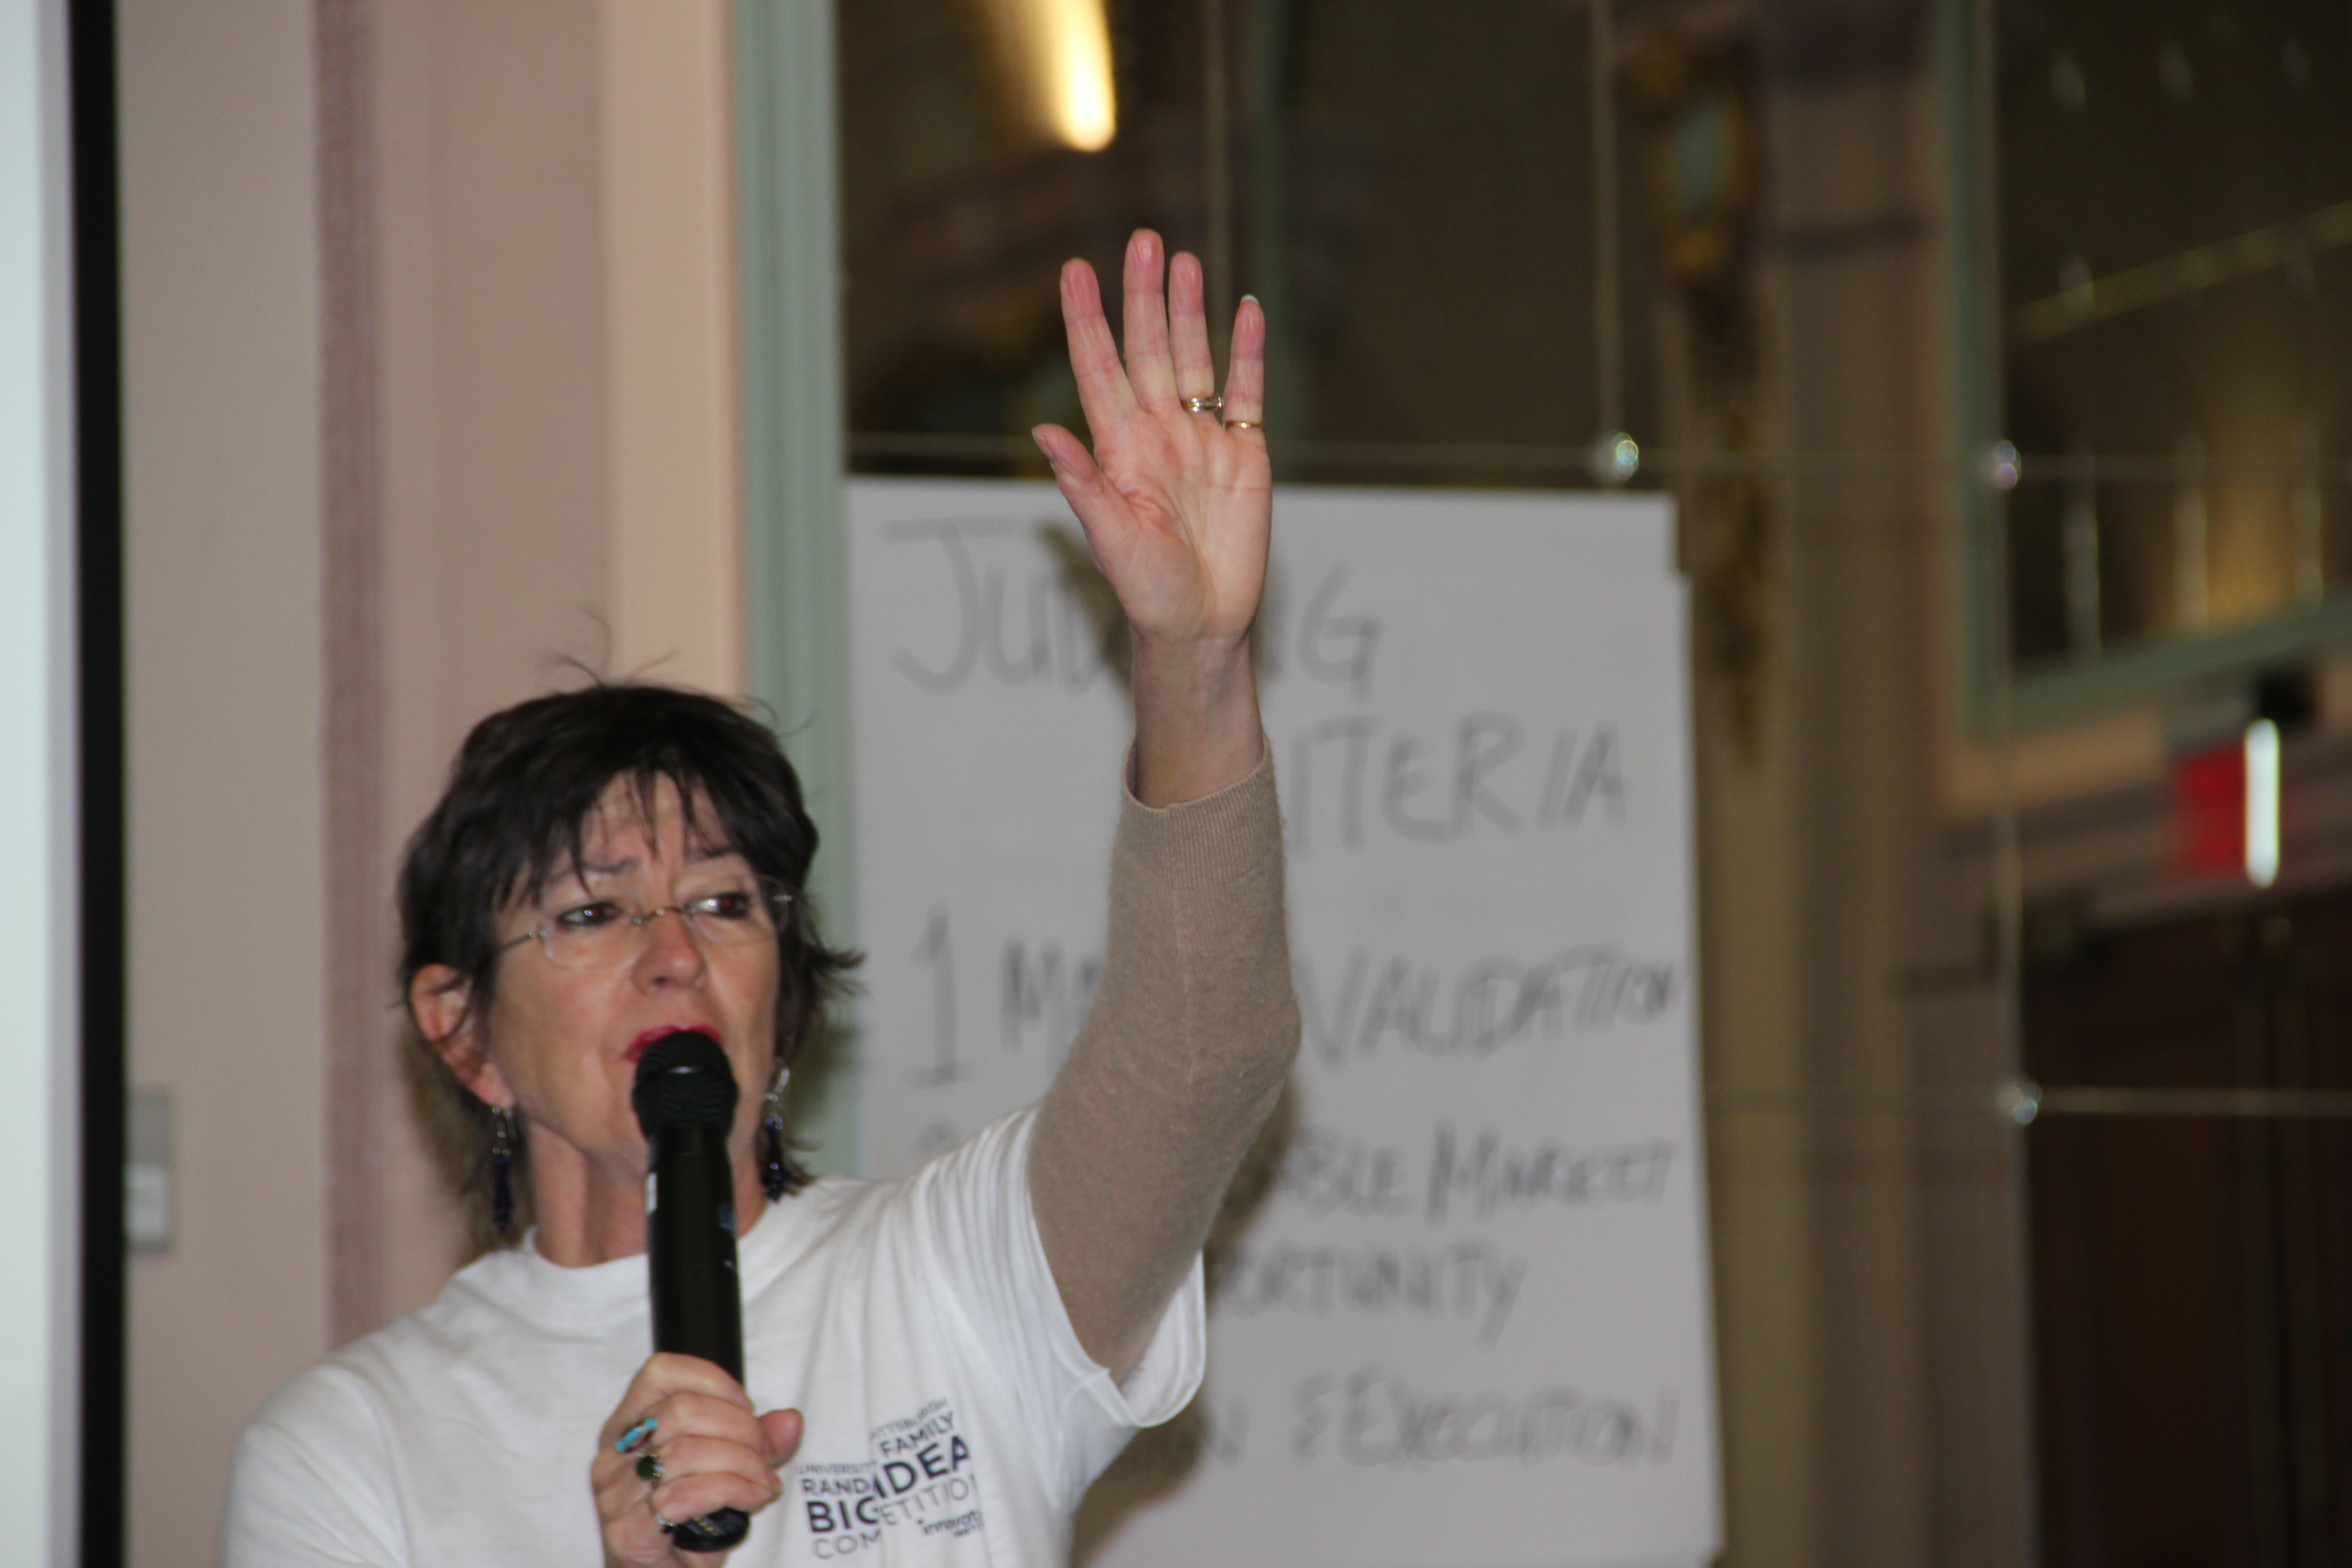 Babs Carryer speaking into mic with one hand up in the air